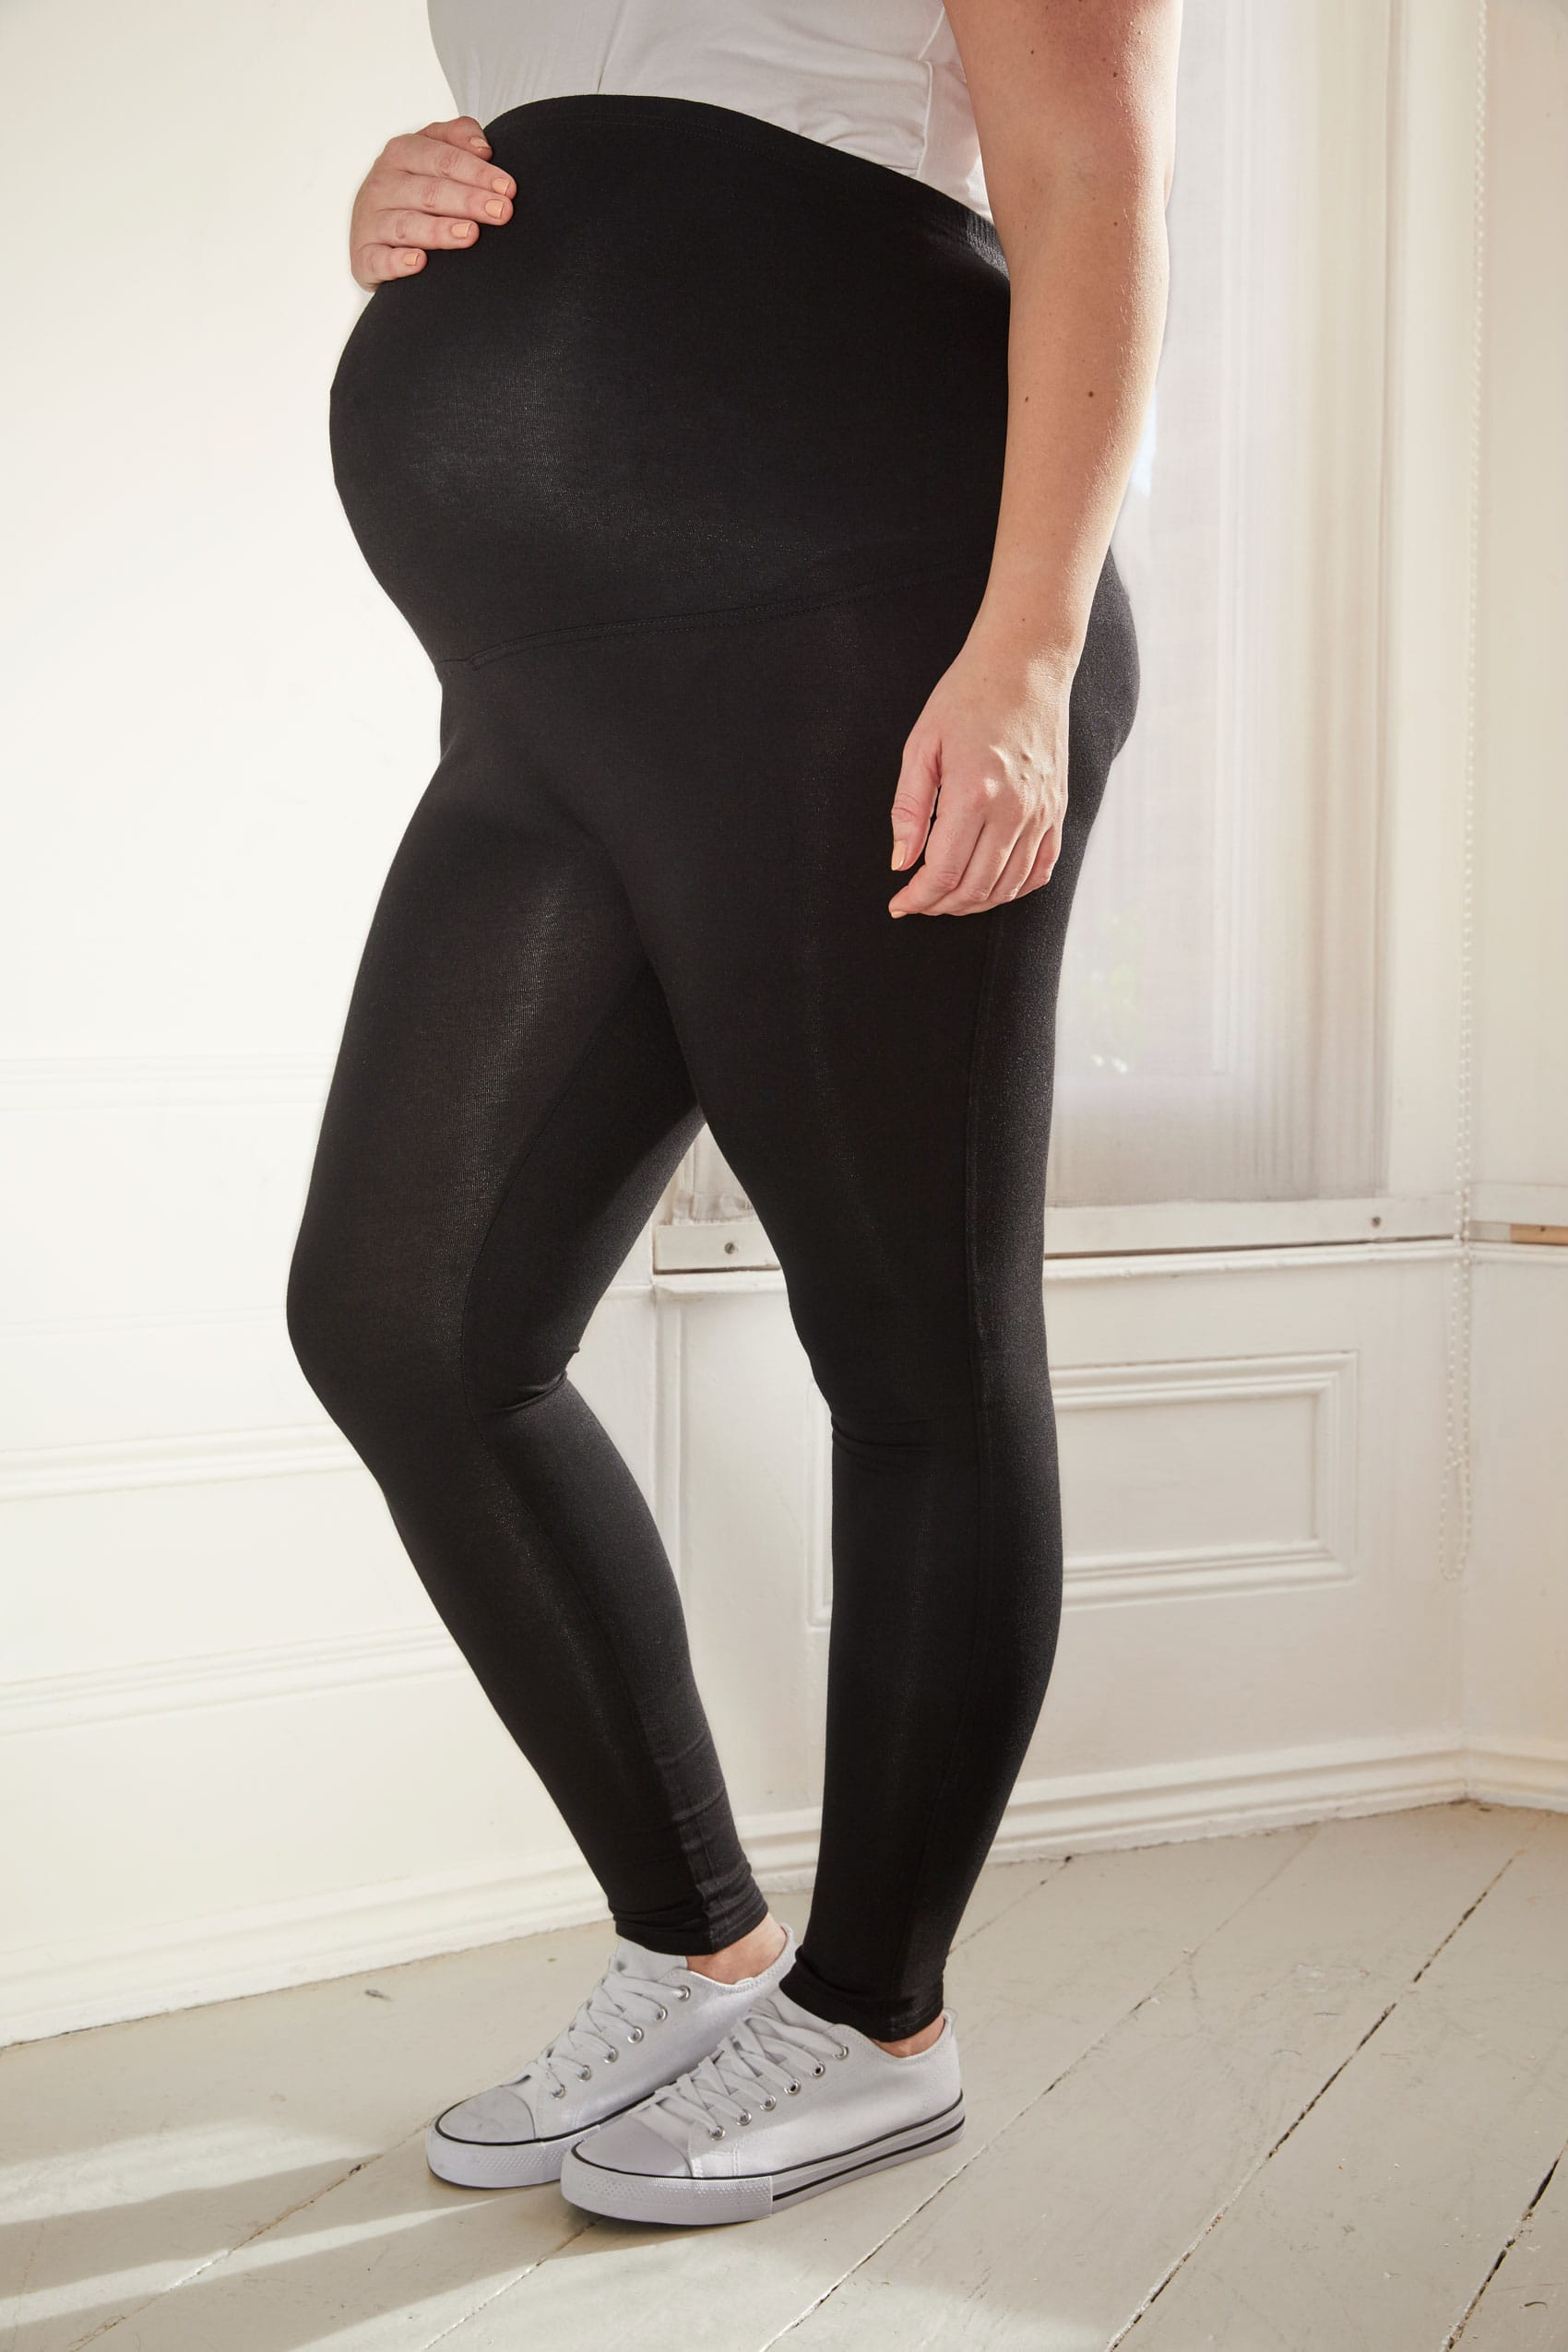 Rooms: BUMP IT UP MATERNITY Black Cotton Elastane Leggings With